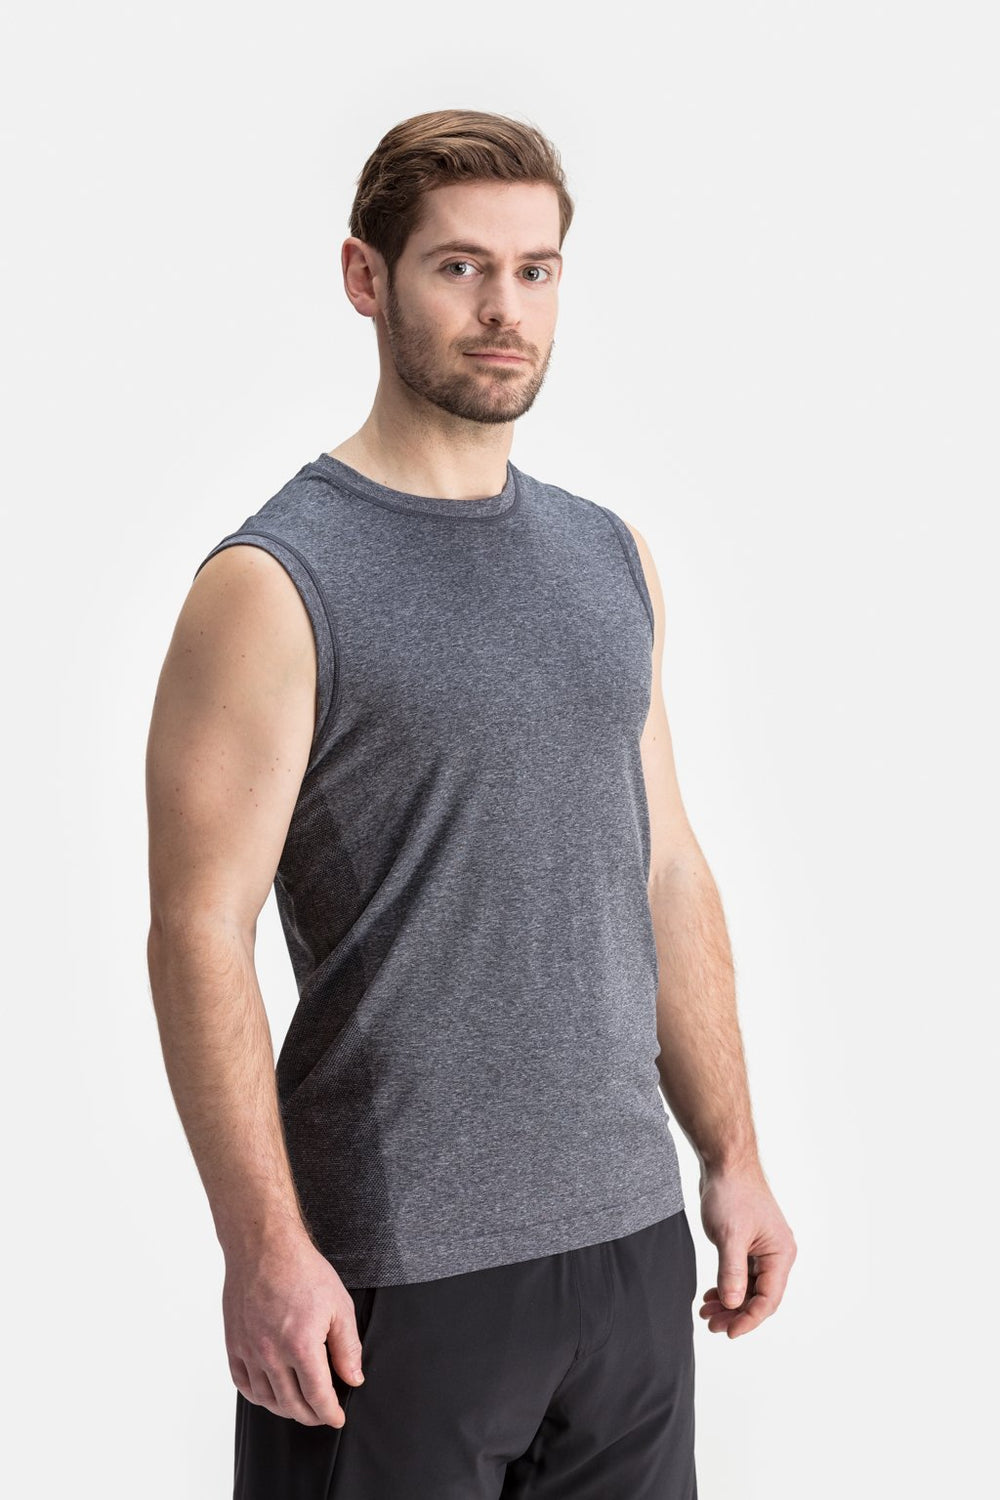 RYU Mens Vapor Sleeveless Tank in Asphalt Heather